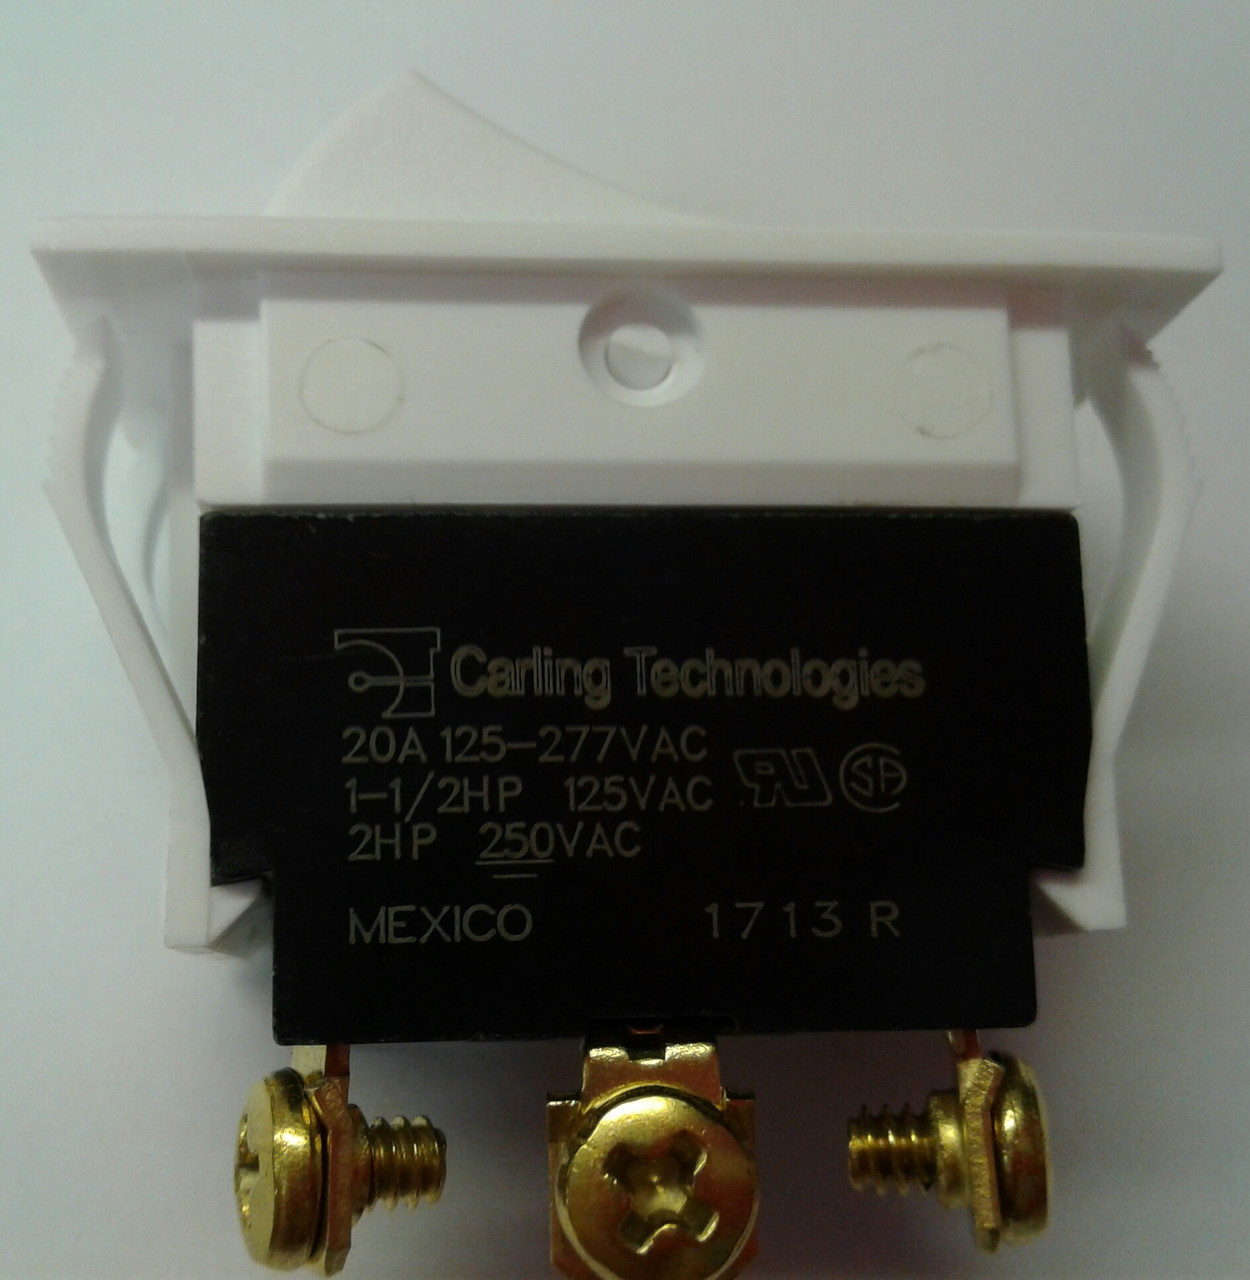 Tigc724 6m Wh Nwh Xdl1 Carling Rocker Switch On Off White Offon Switches Electrical Products Screw Terminals